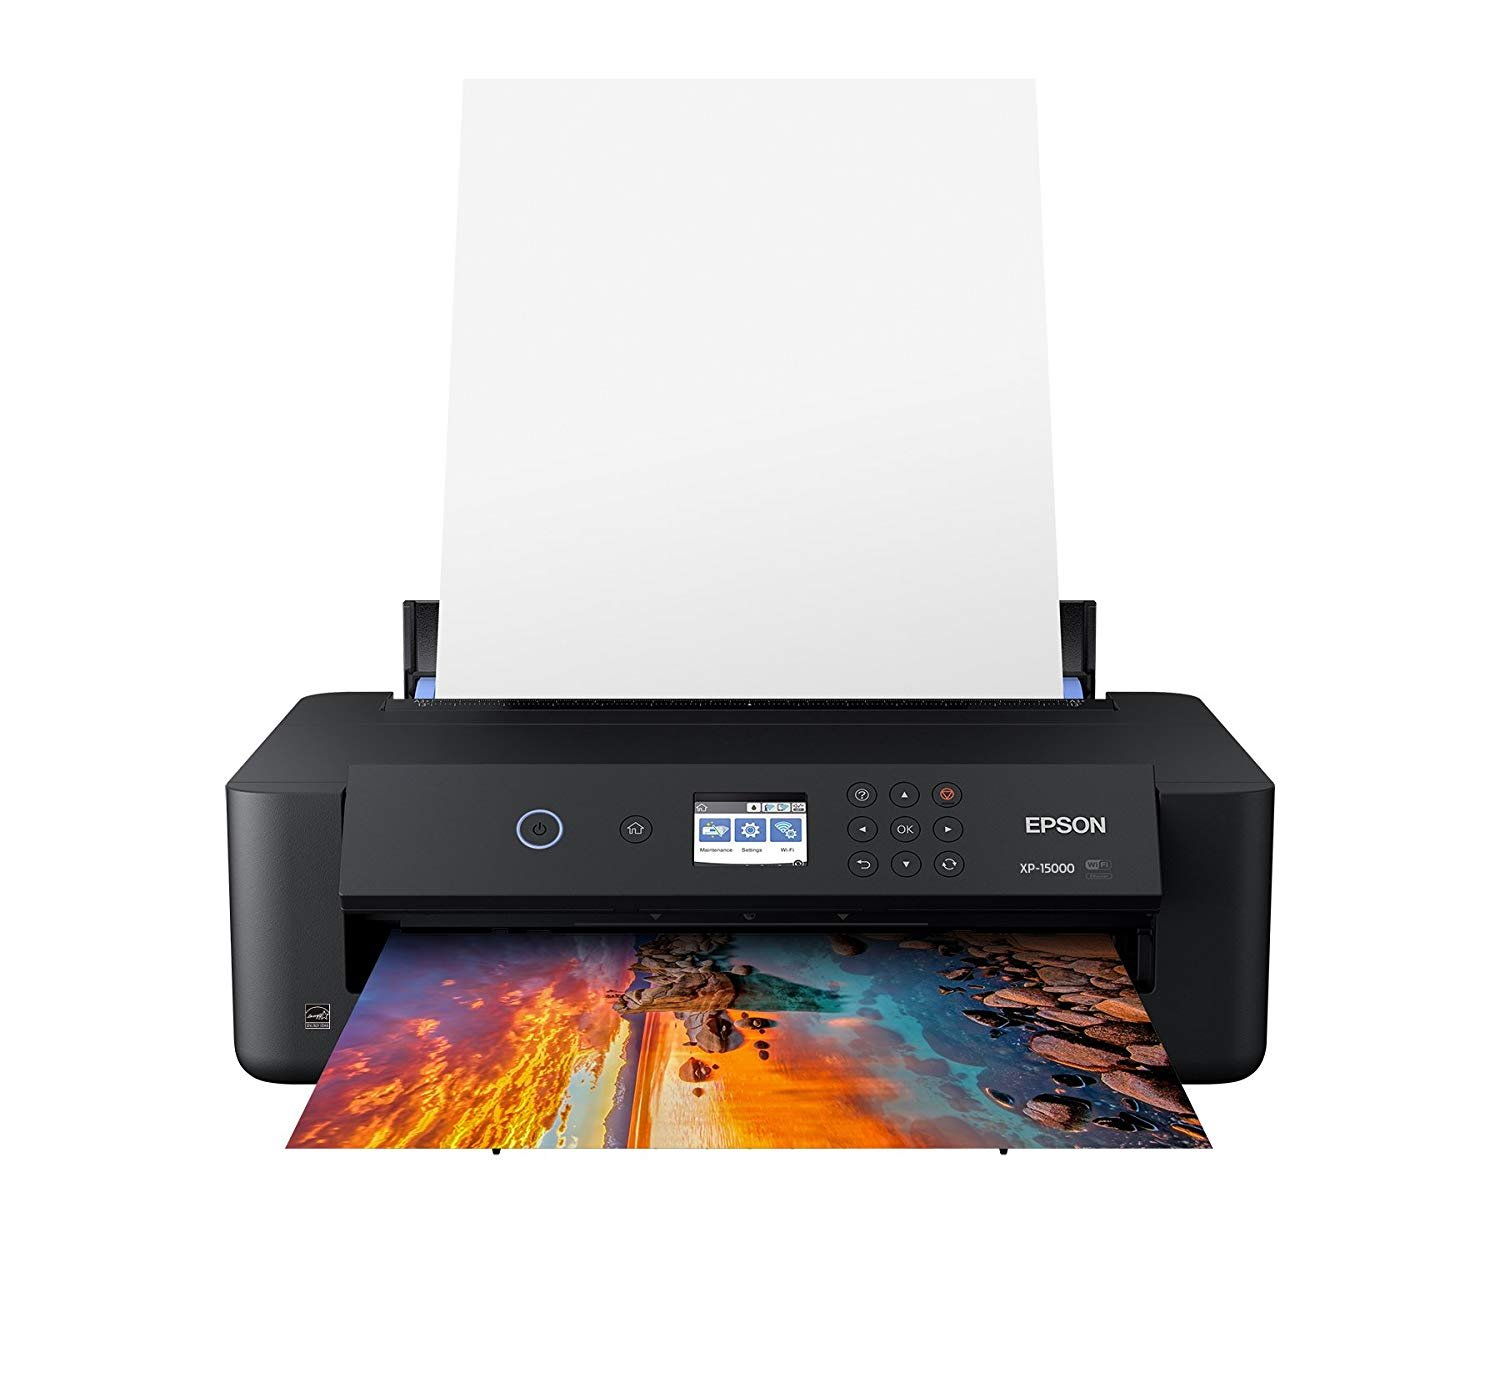 Epson Expression Photo HD XP-15000 - The Best Photo Printers of 2019 - FilterGrade